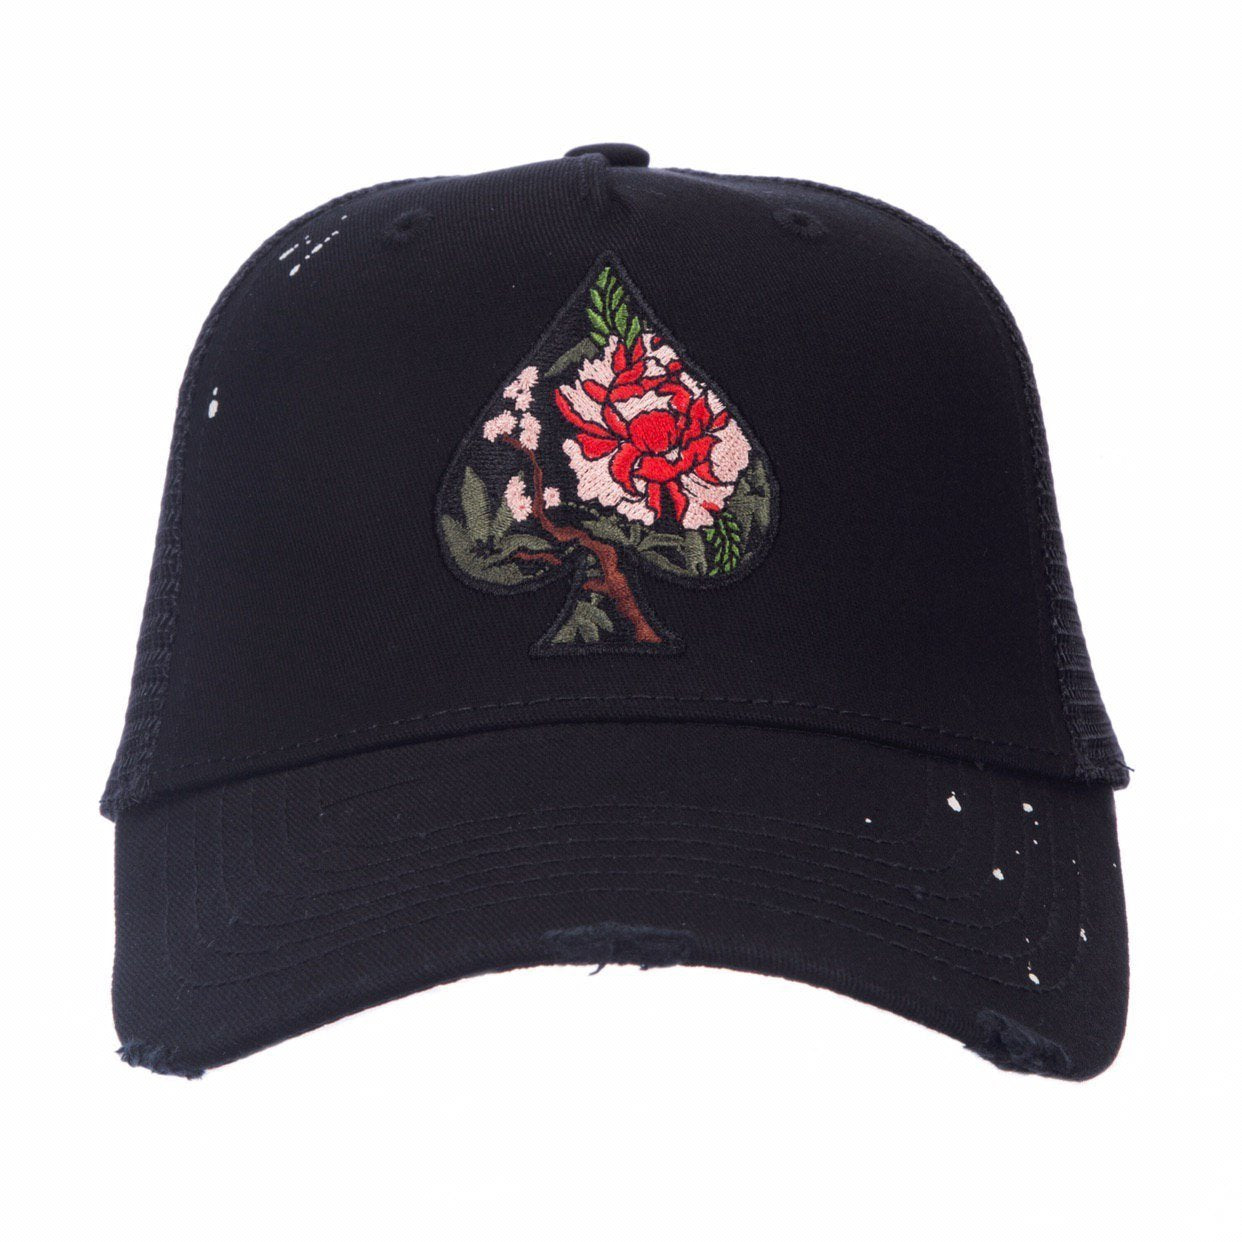 Ace Blossom Black Distressed Trucker - ACE VESTITI